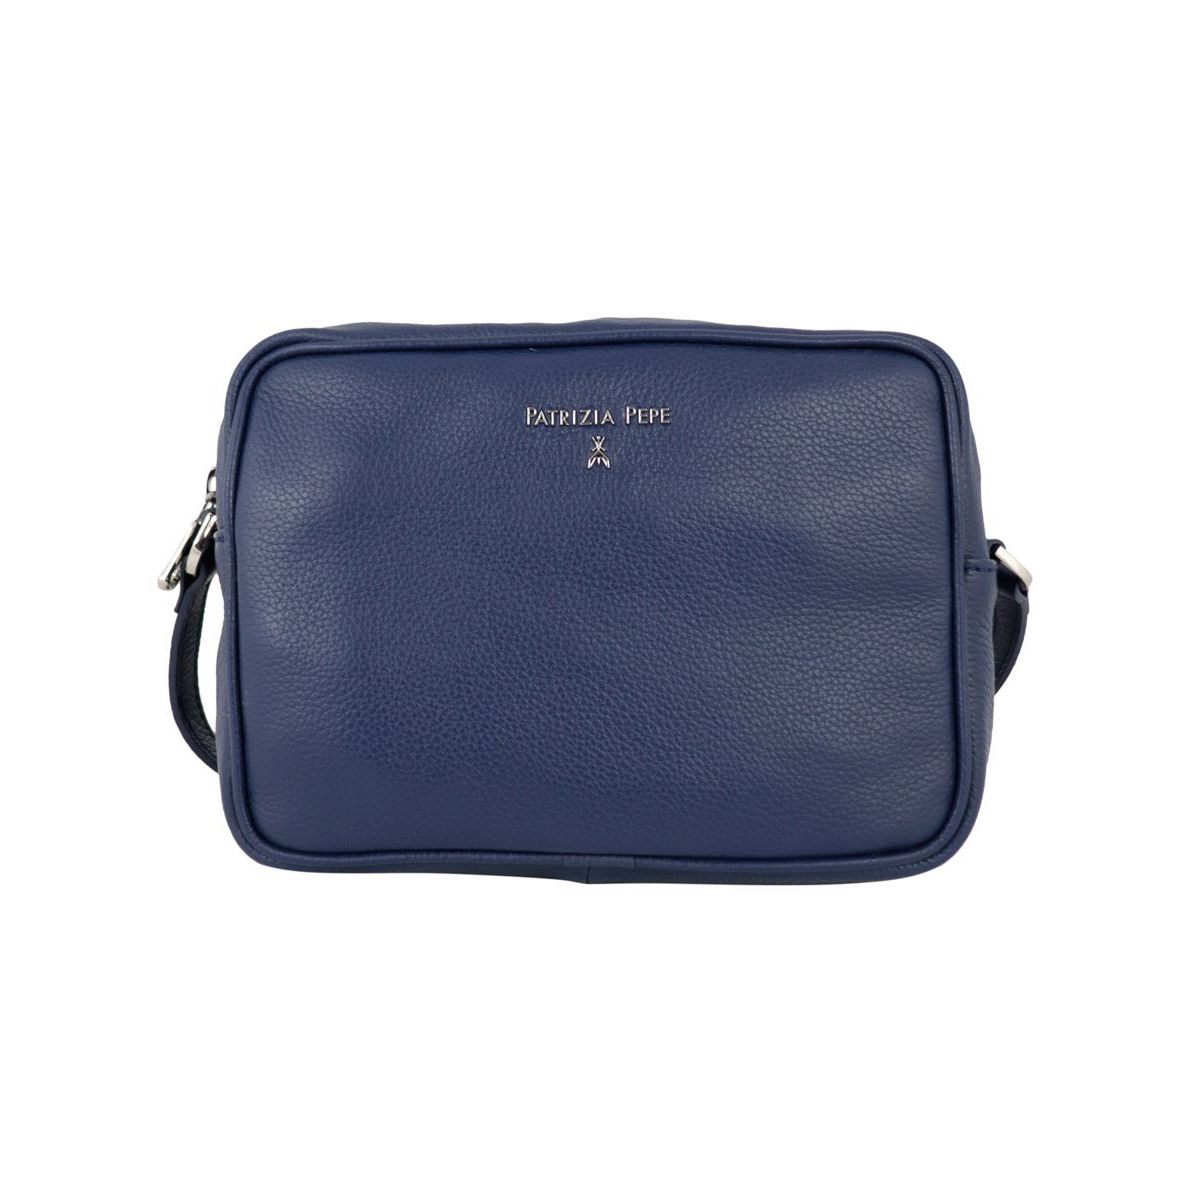 Small shoulder bag in textured leather with embossed metal logo Blue Patrizia Pepe